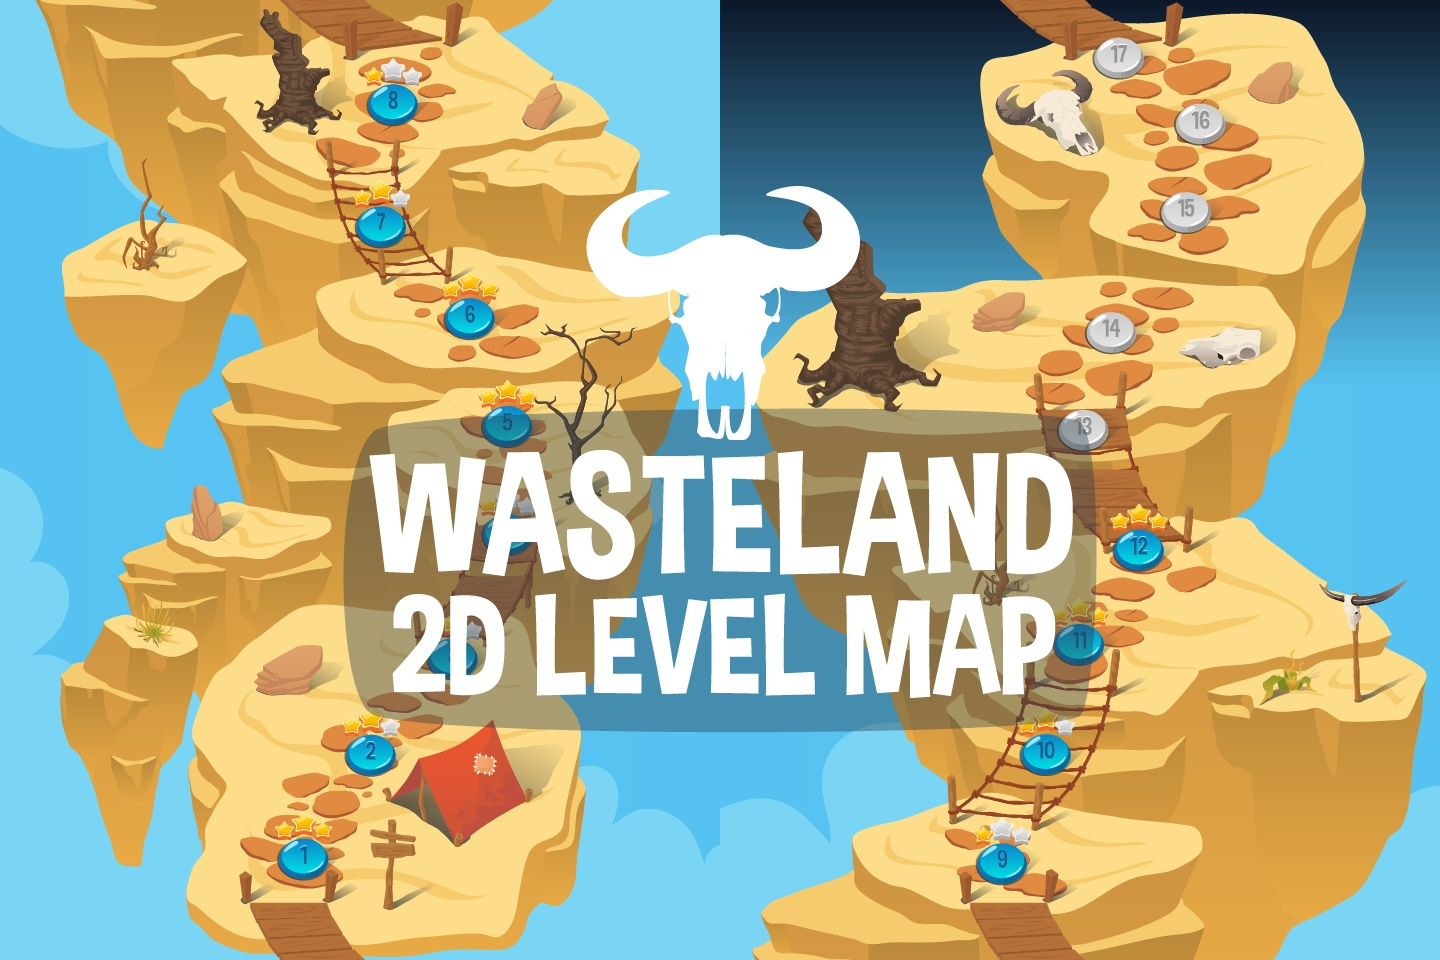 Wasteland Level Map 2D Backgrounds